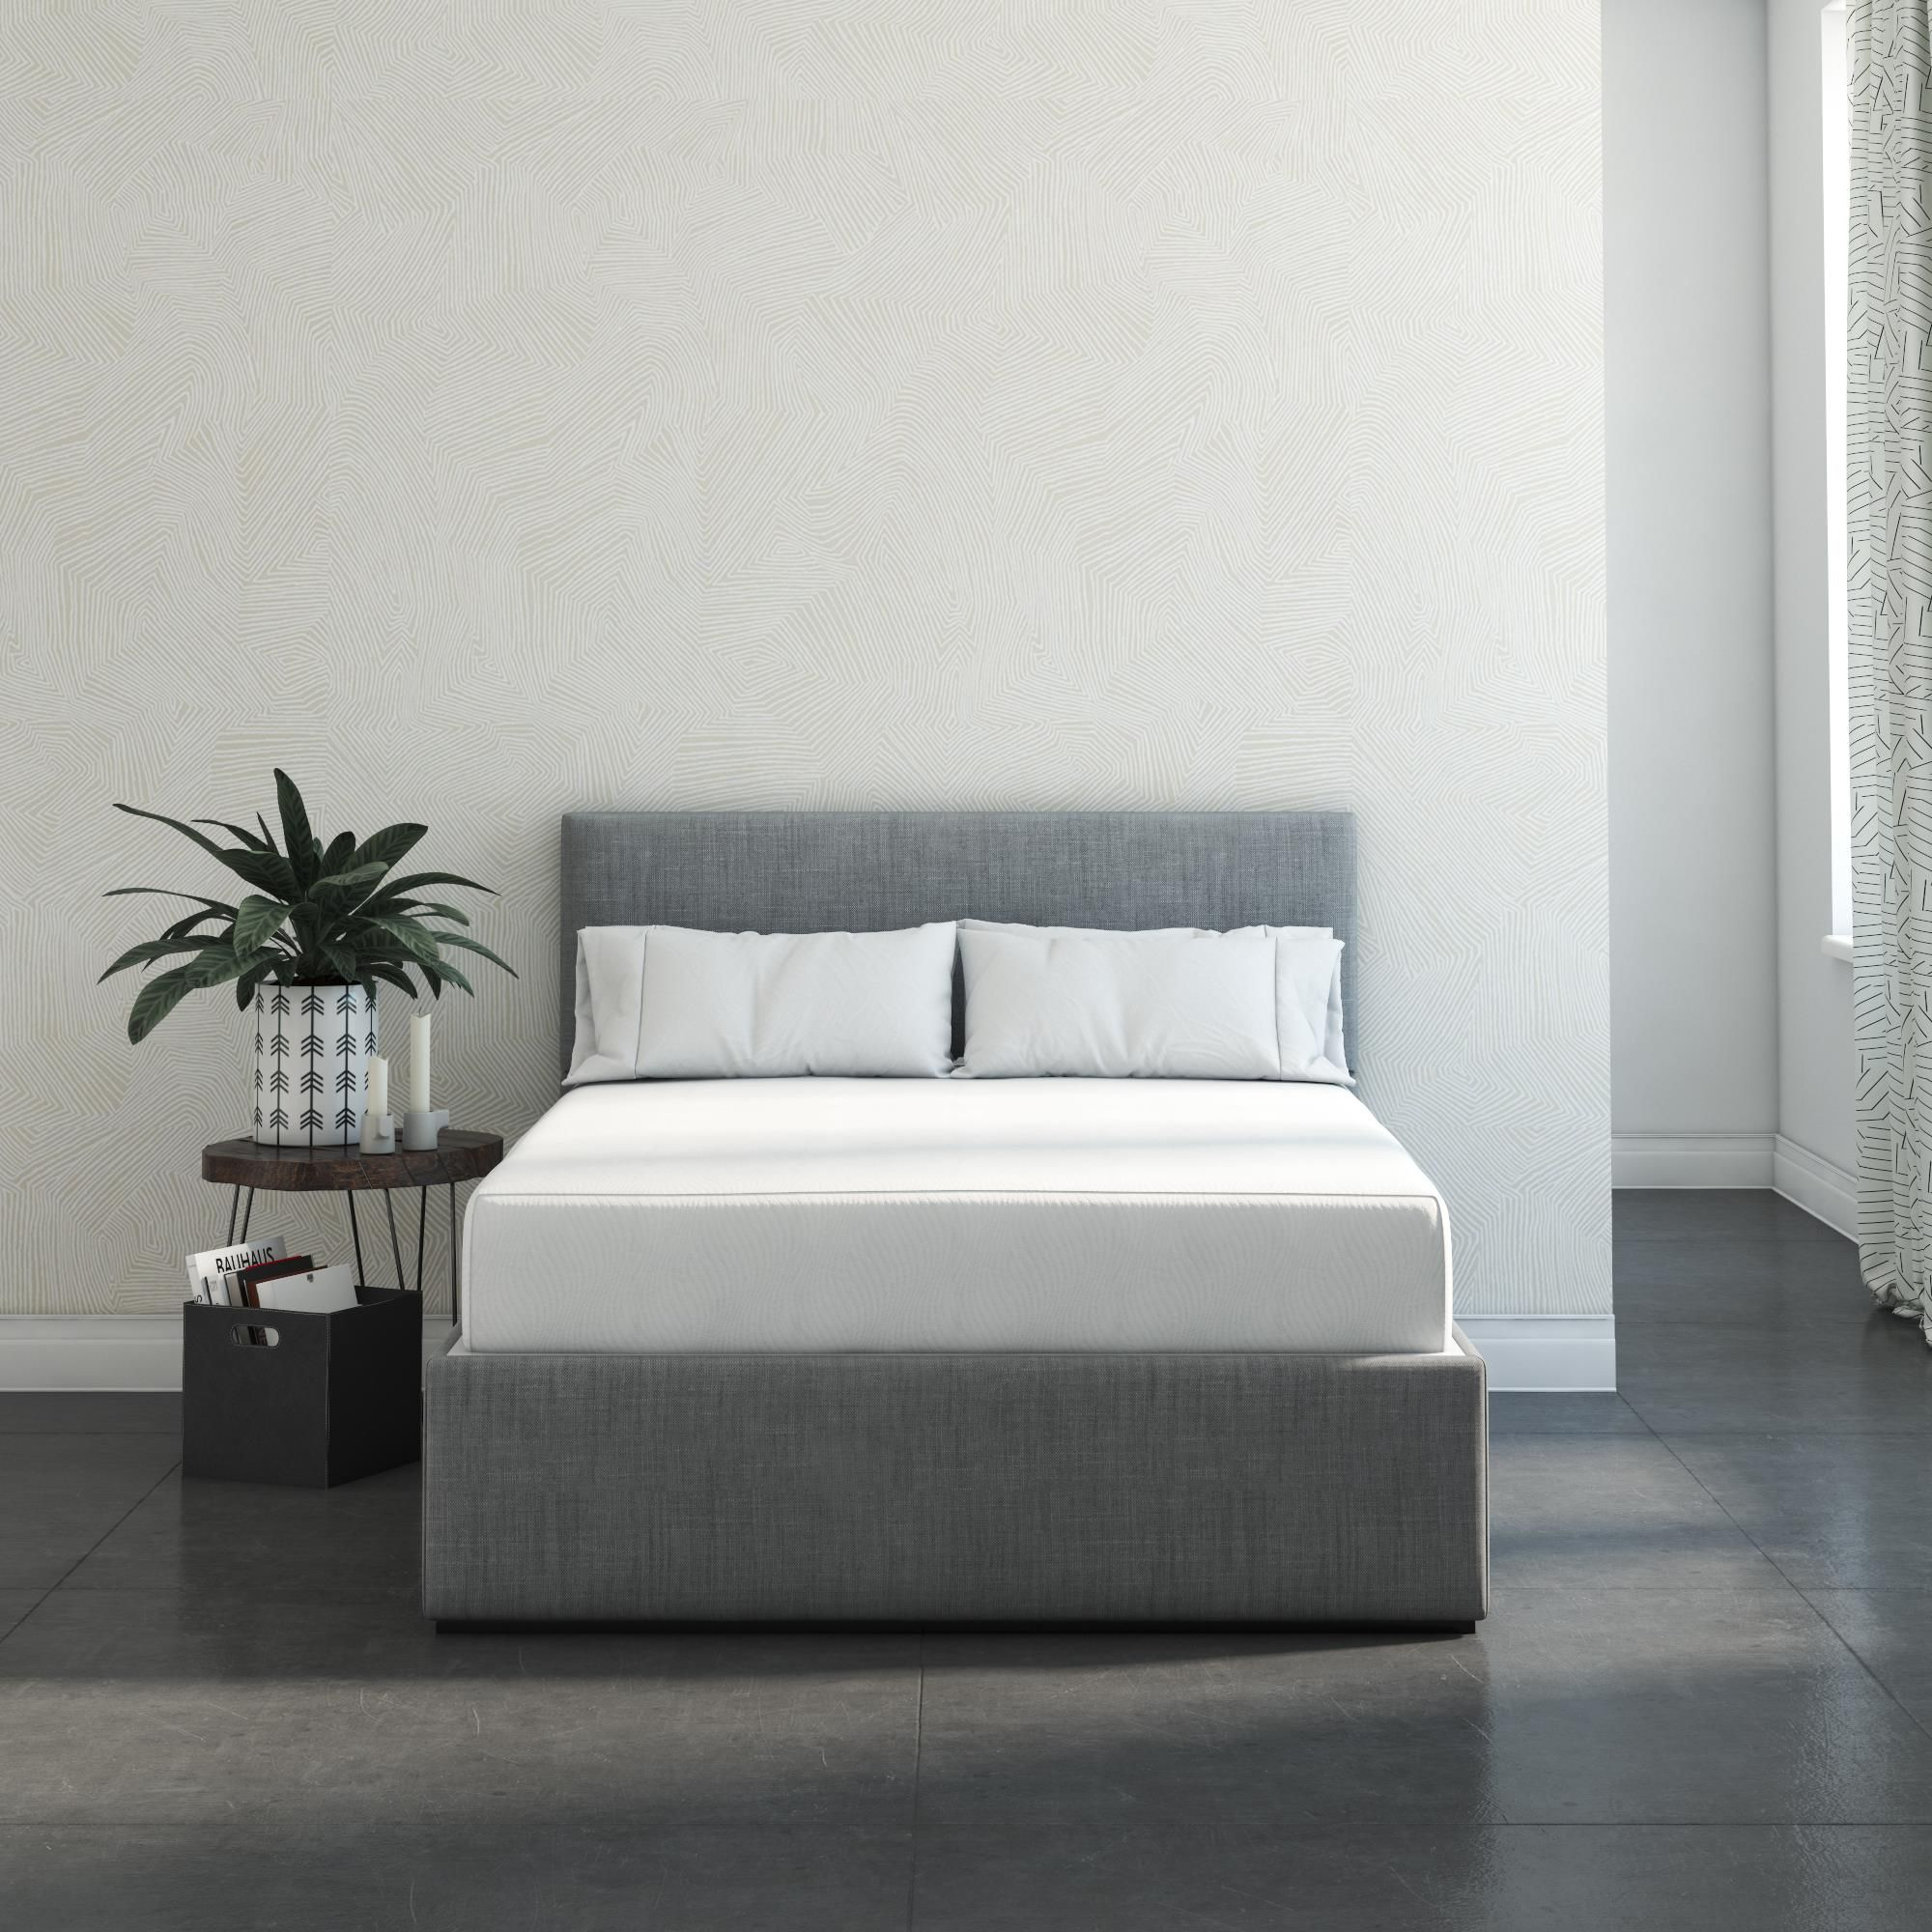 Free 2 Day Shipping Buy Mainstays 10 Memory Foam Mattress Queen At Walmart Com In 2020 Memory Foam Mattress Mattress Foam Mattress